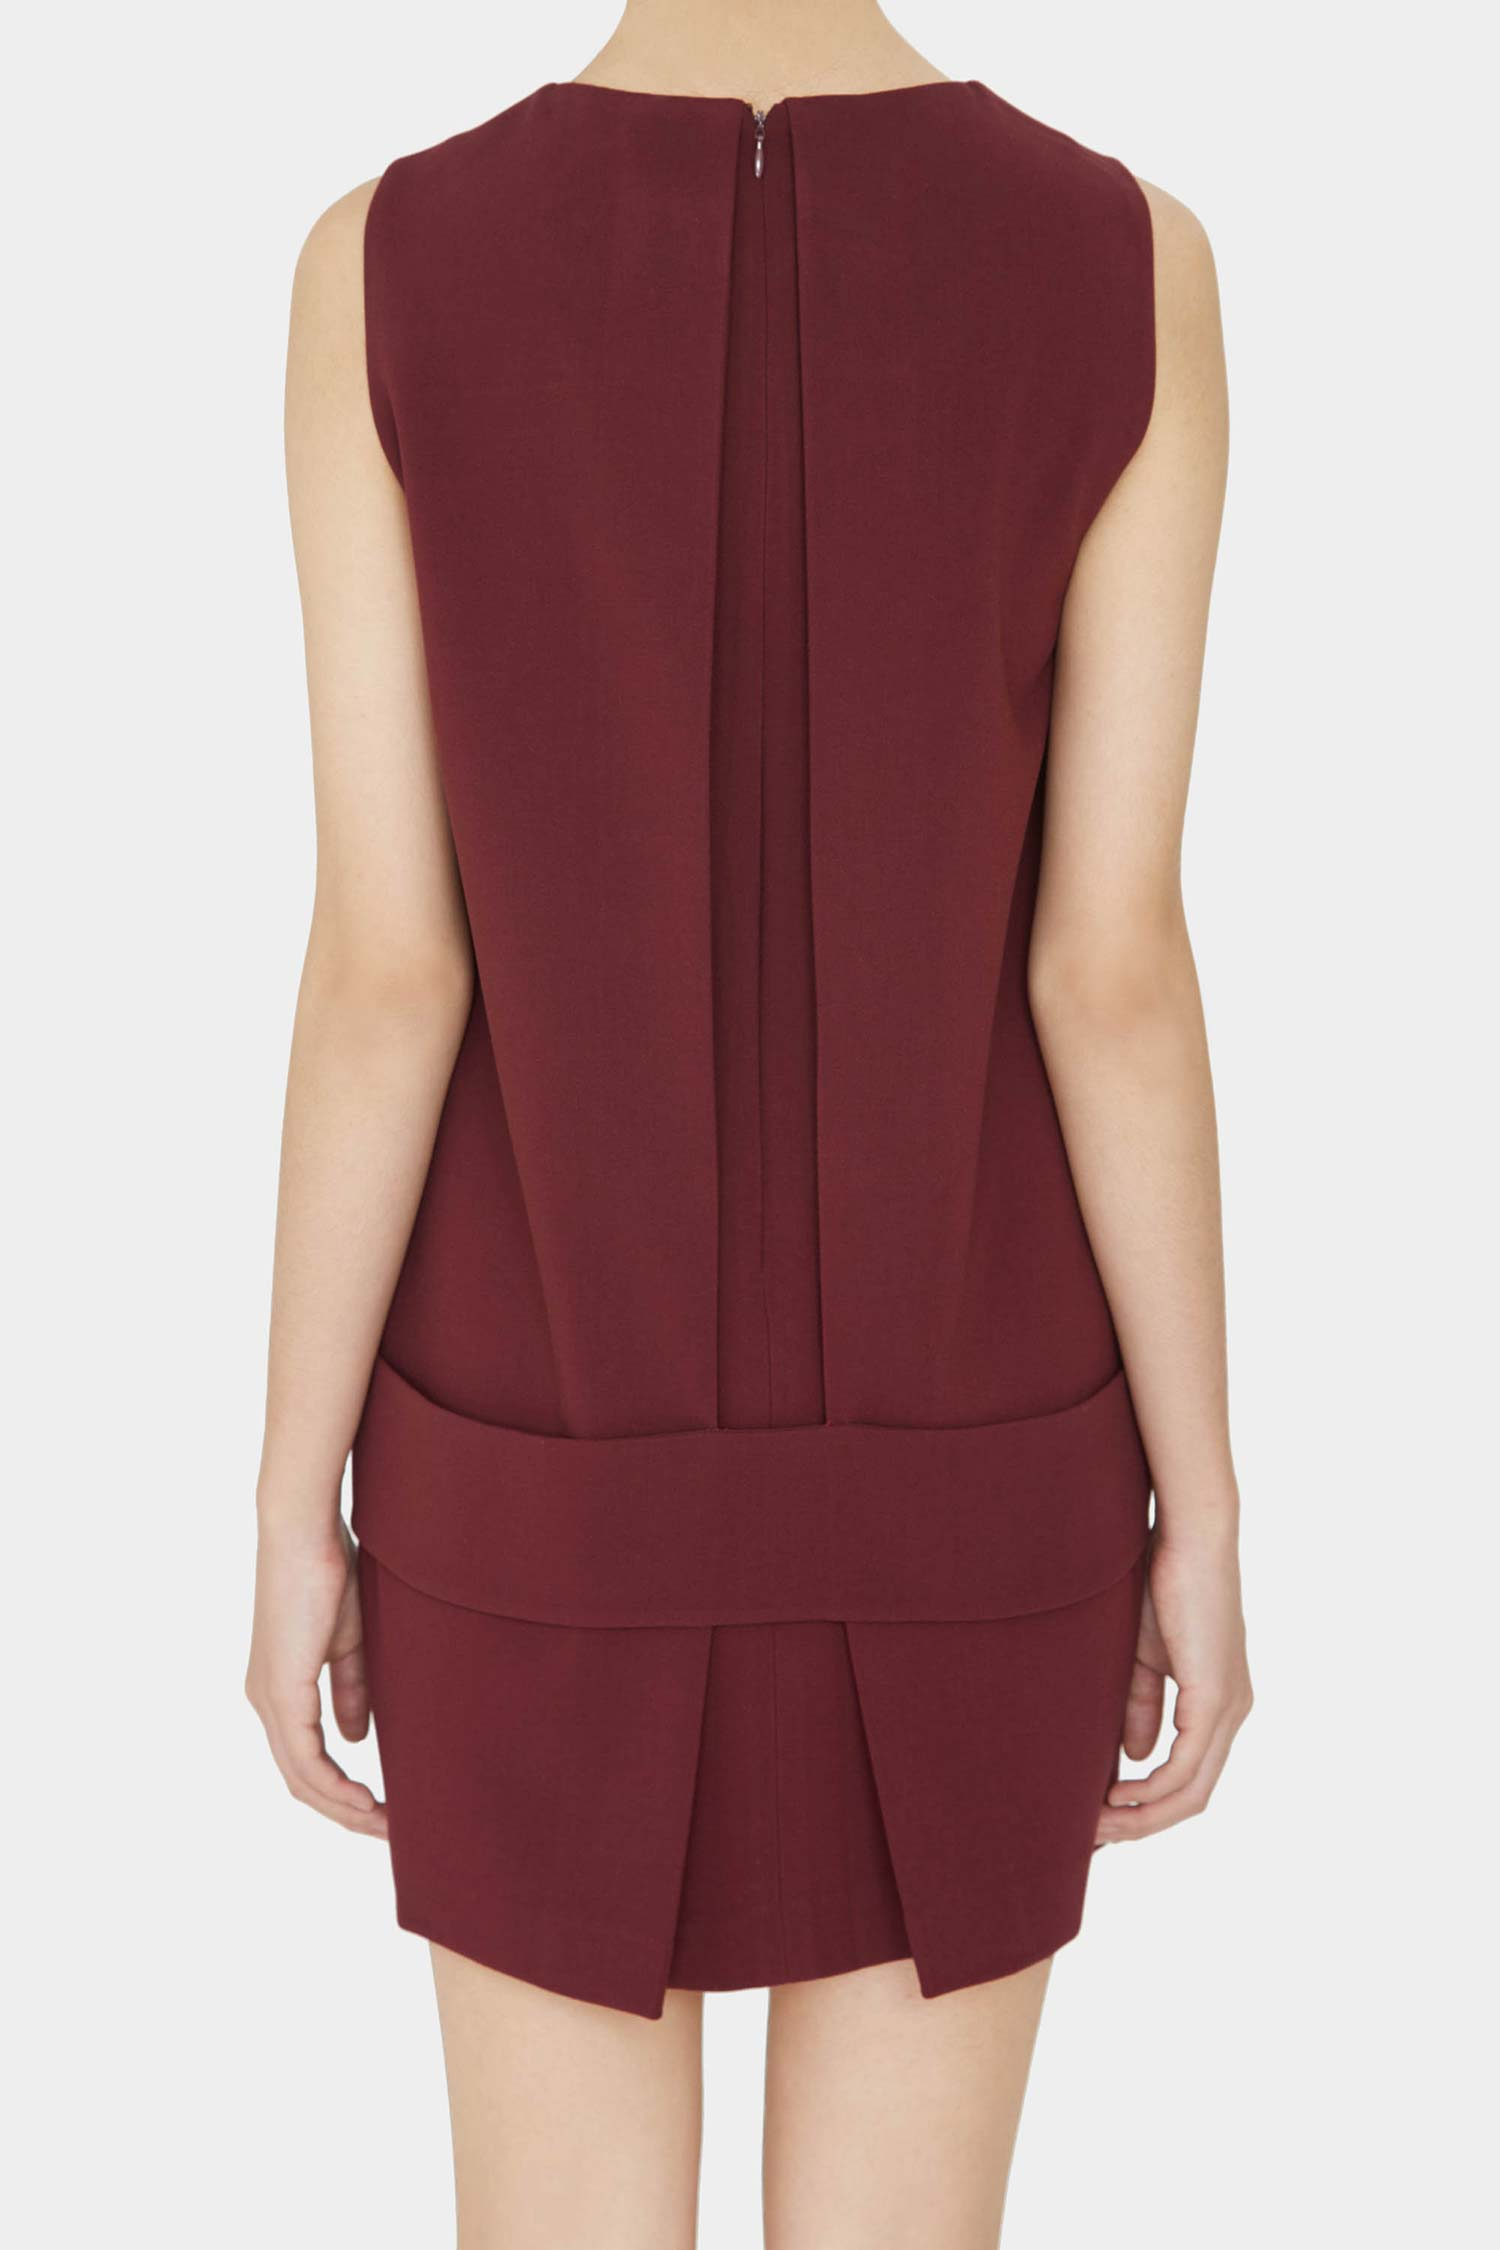 BURGUNDY ALIN MINI DRESS